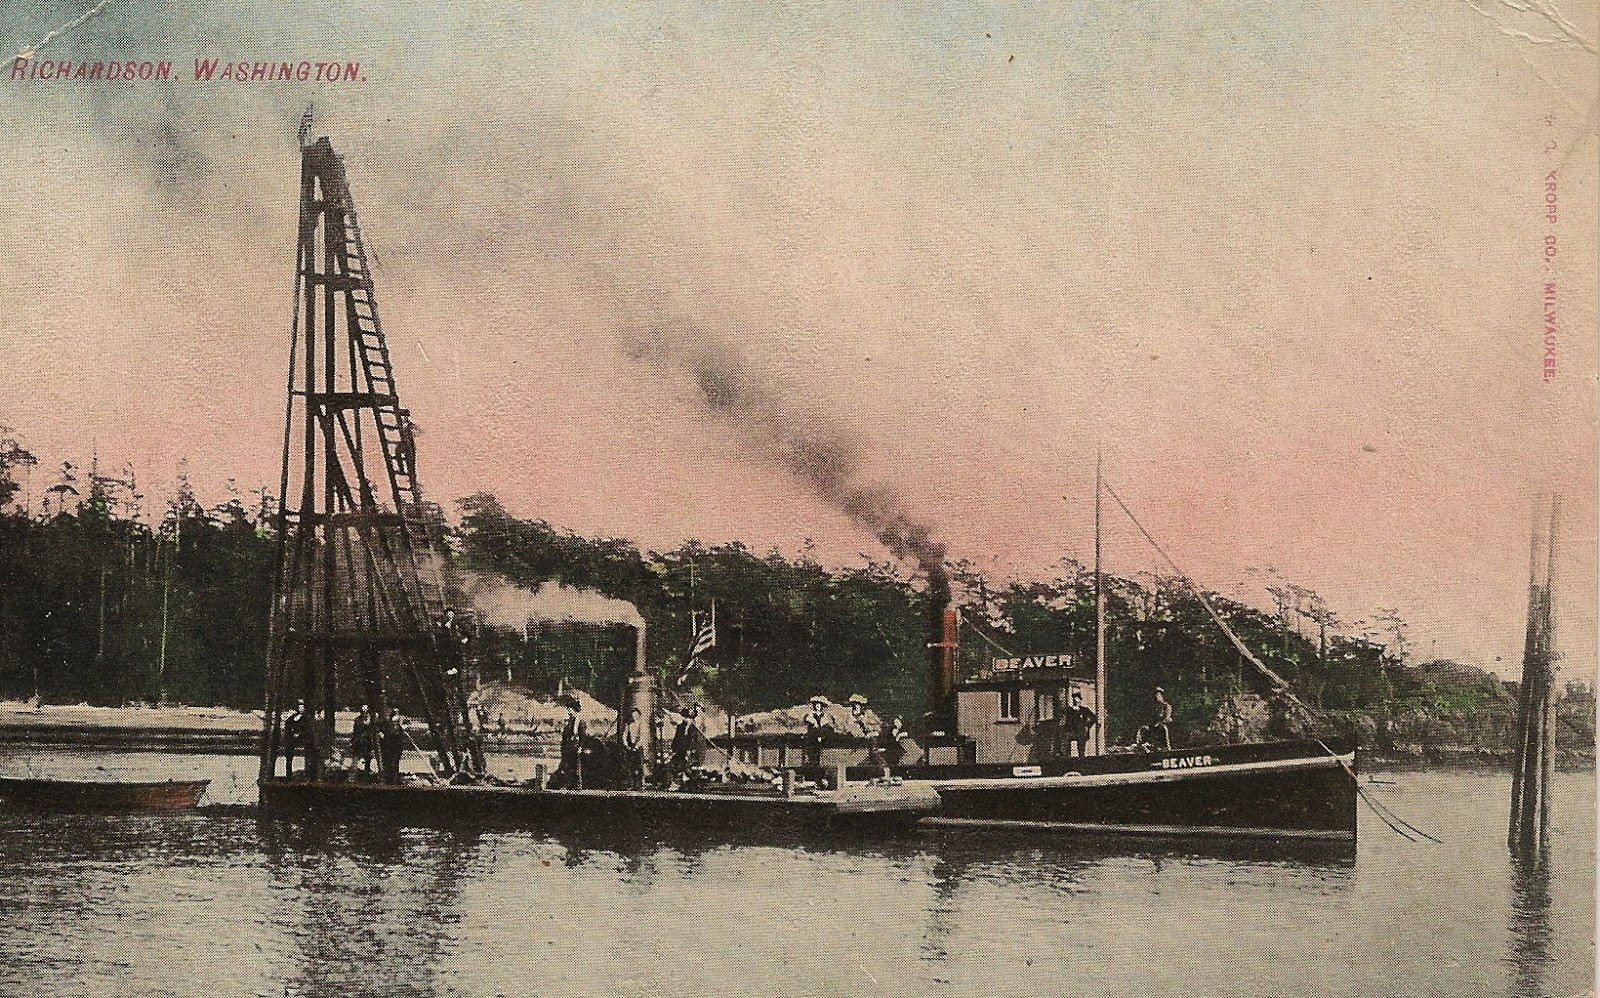 The Beaver She Tended The First Steam Pile Driver In Sjc In 1894 Pile  Driver Was Owned By Kinleyside, Richardson, Lopez